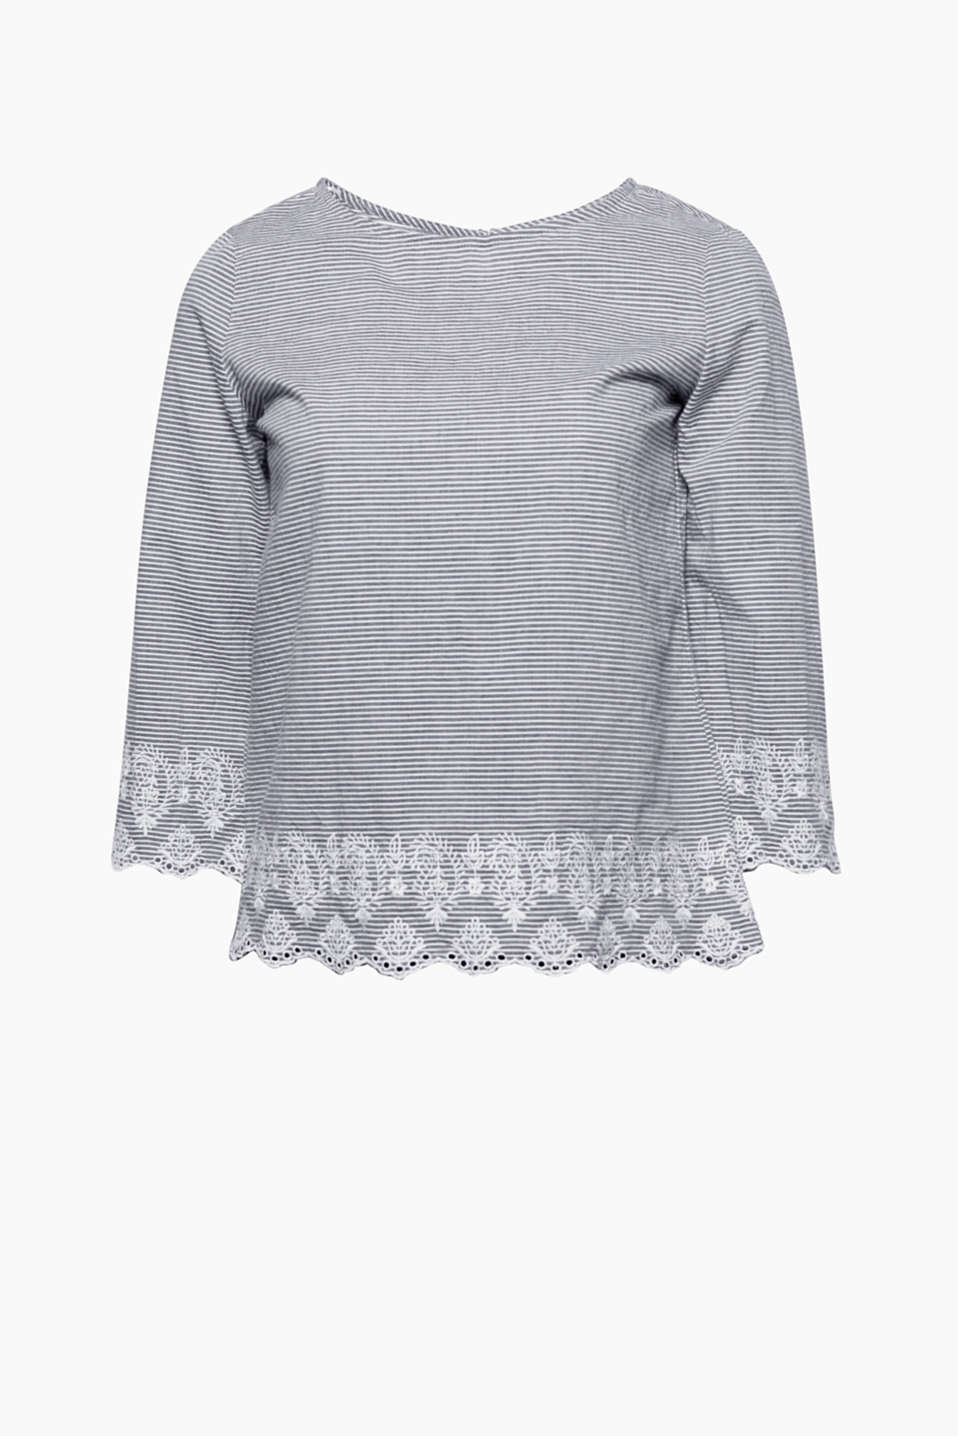 A blouse with favourite-piece potential: finely striped and slightly fitted with floral embroidery on pure cotton!